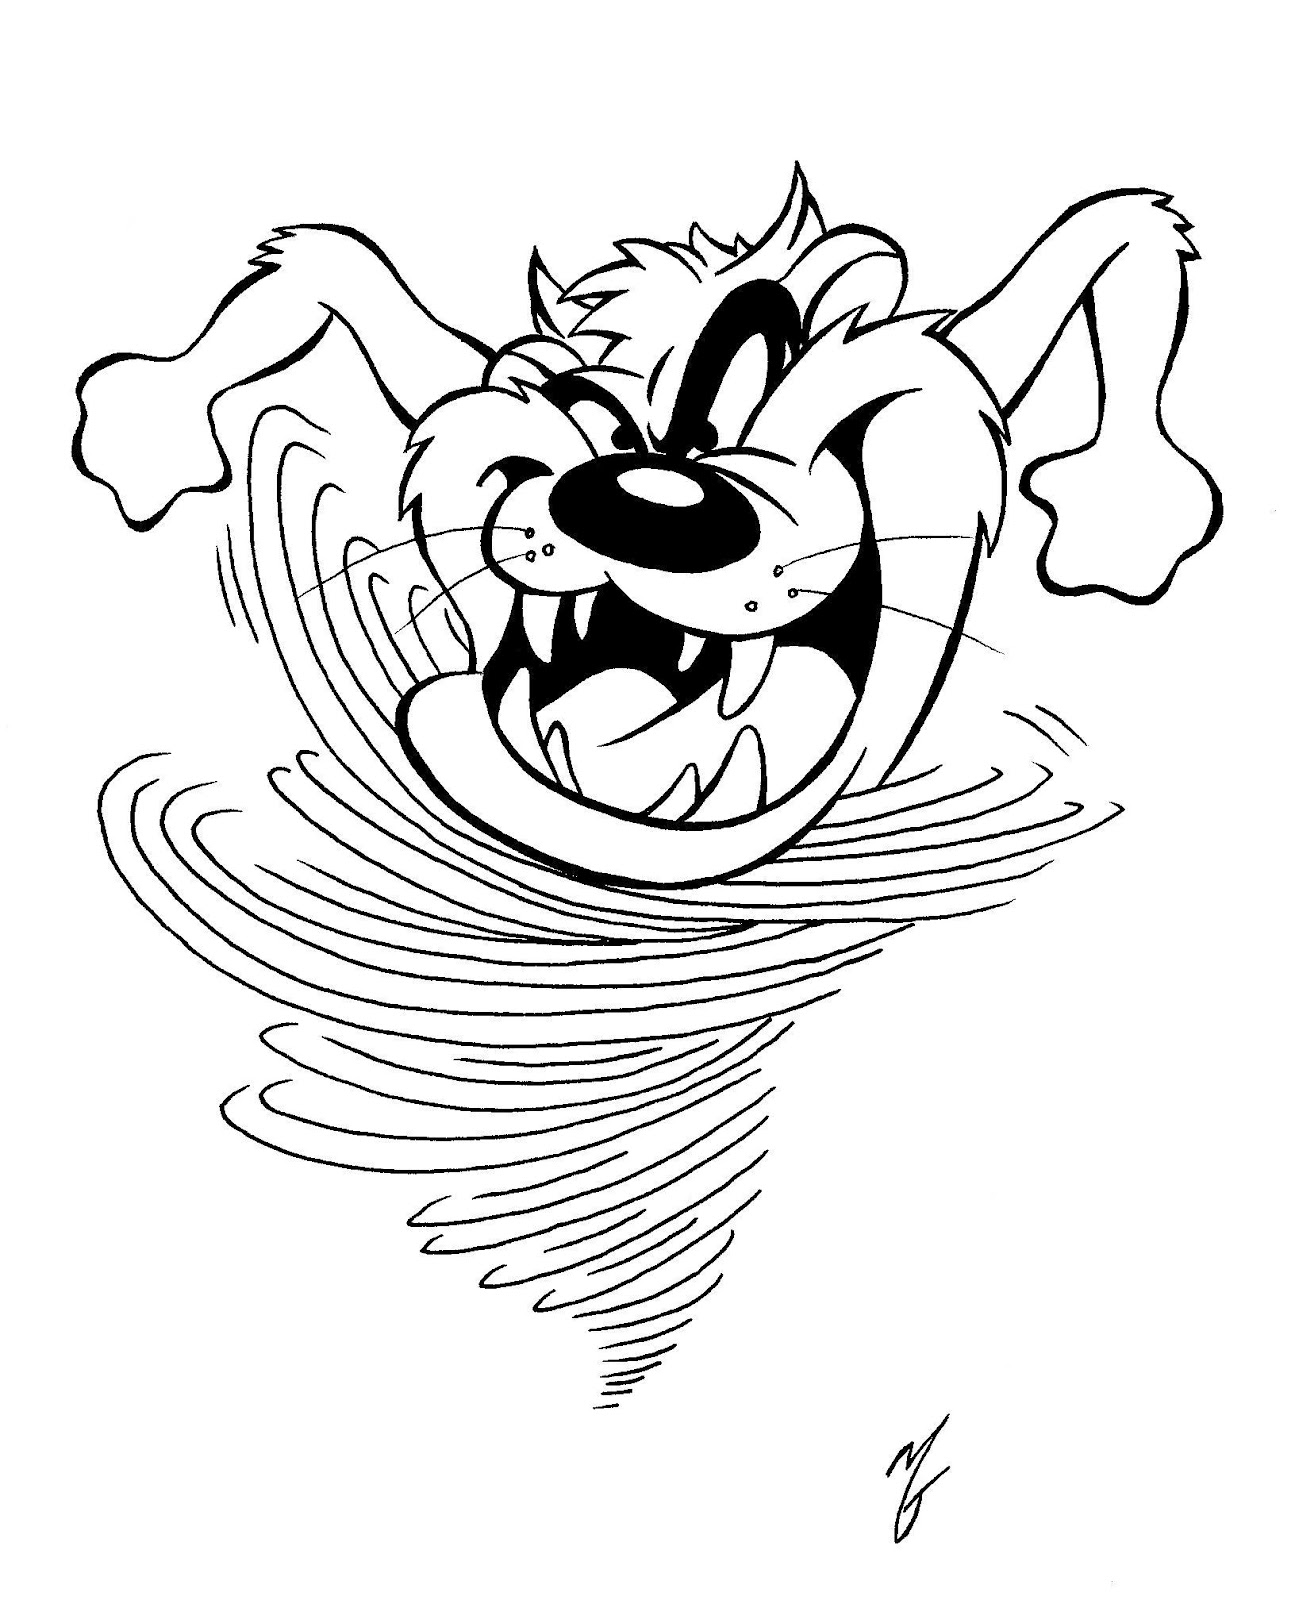 tasmanian devil coloring pages | A view from a Goon: July 2012